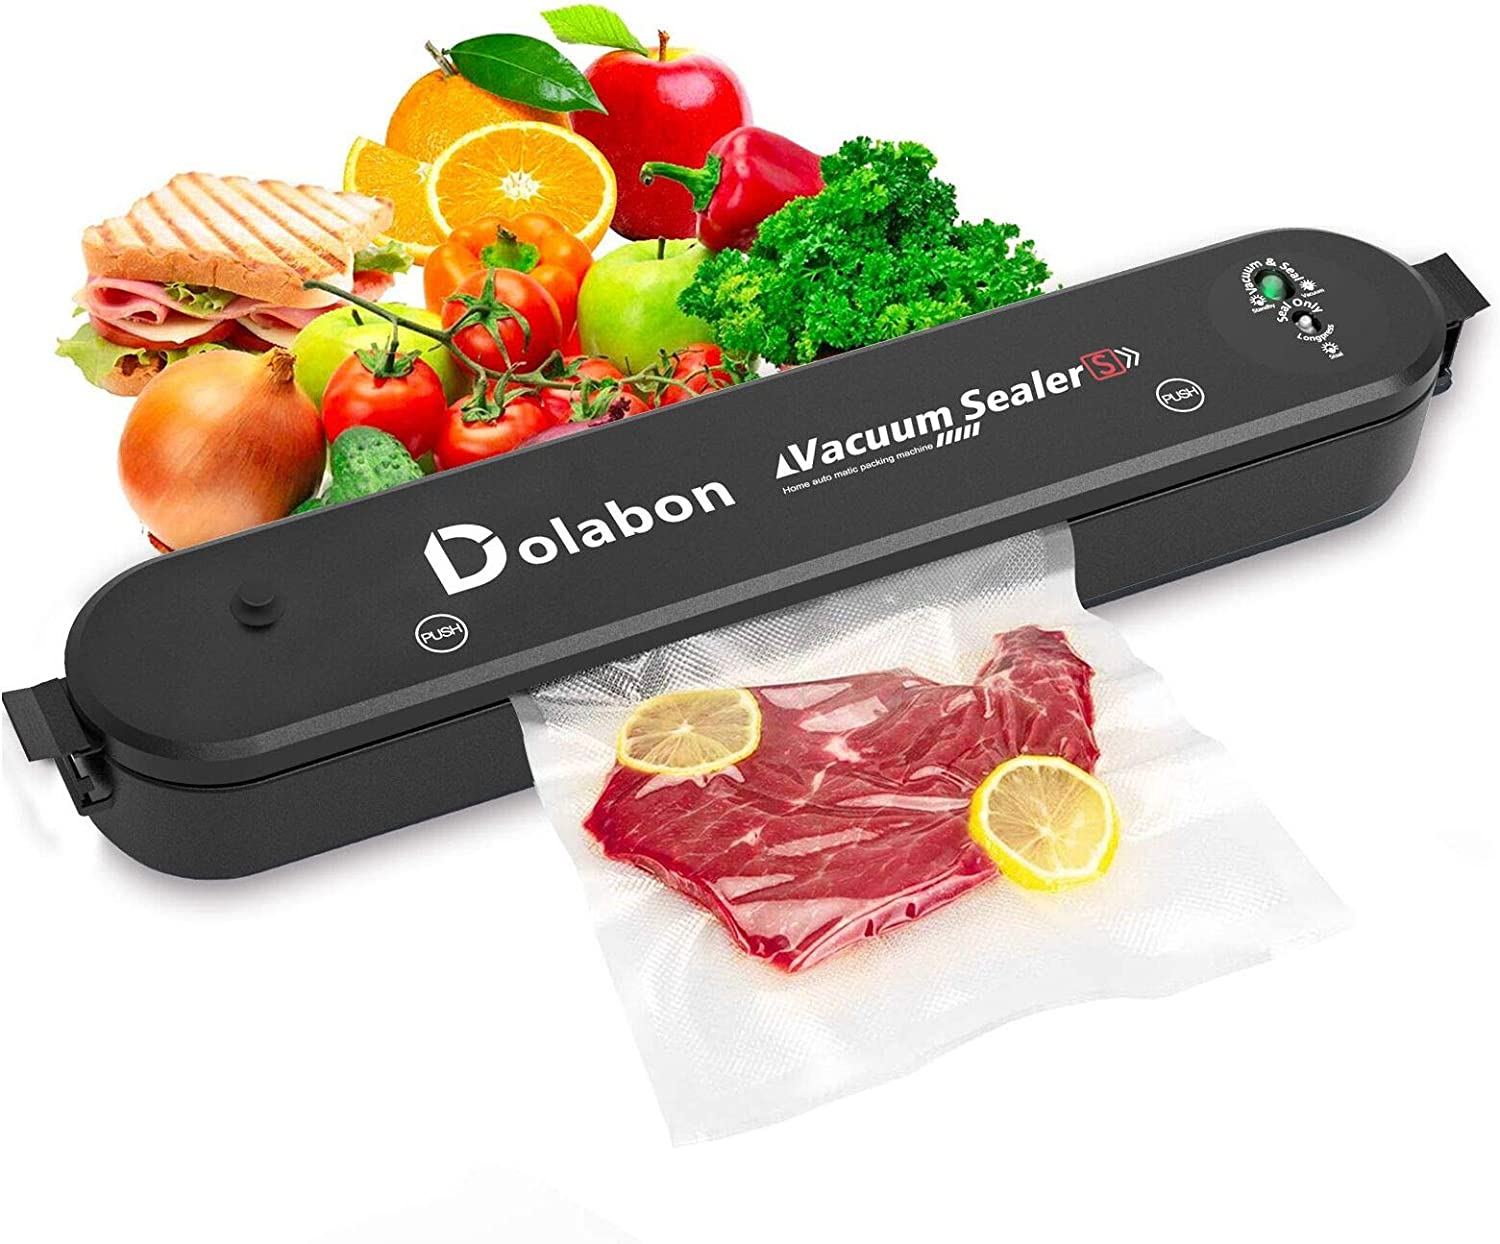 Vacuum Sealer Machine, Automatic Food Sealer System with 30 Sealing Bags Food Vacuum Air Sealing System for Food Preservation Storage Saver